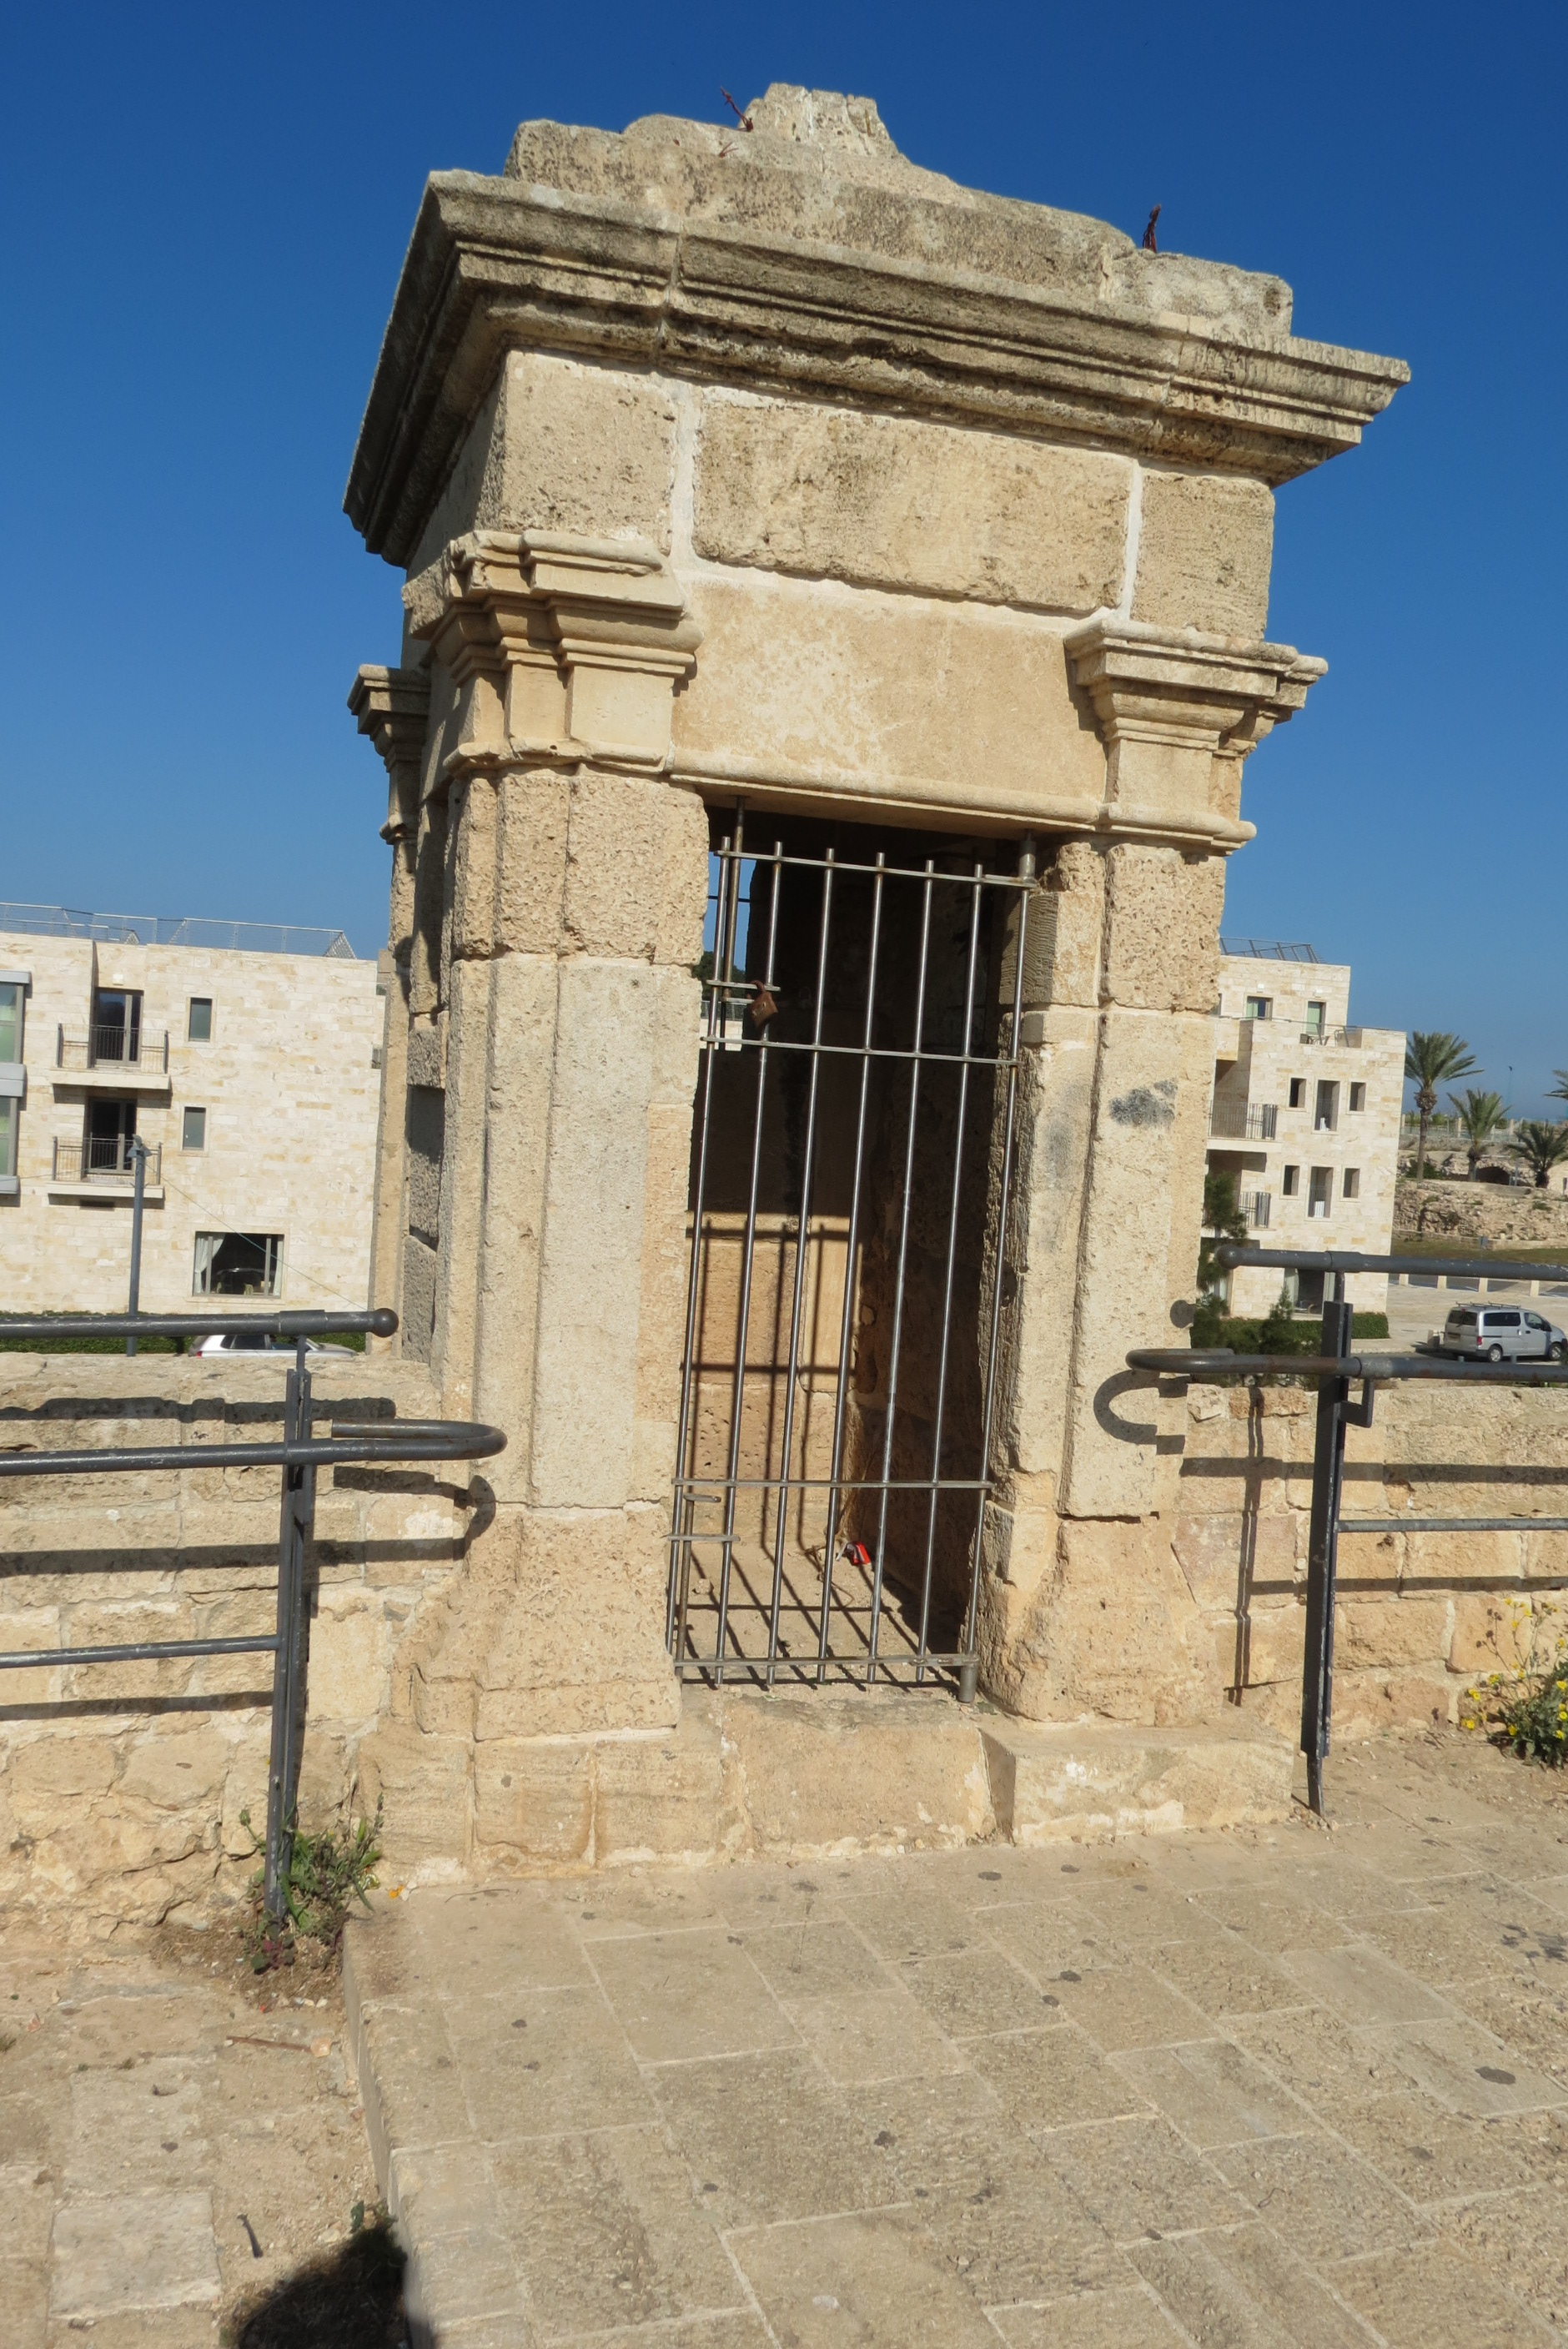 Guard house on Walls of Acco